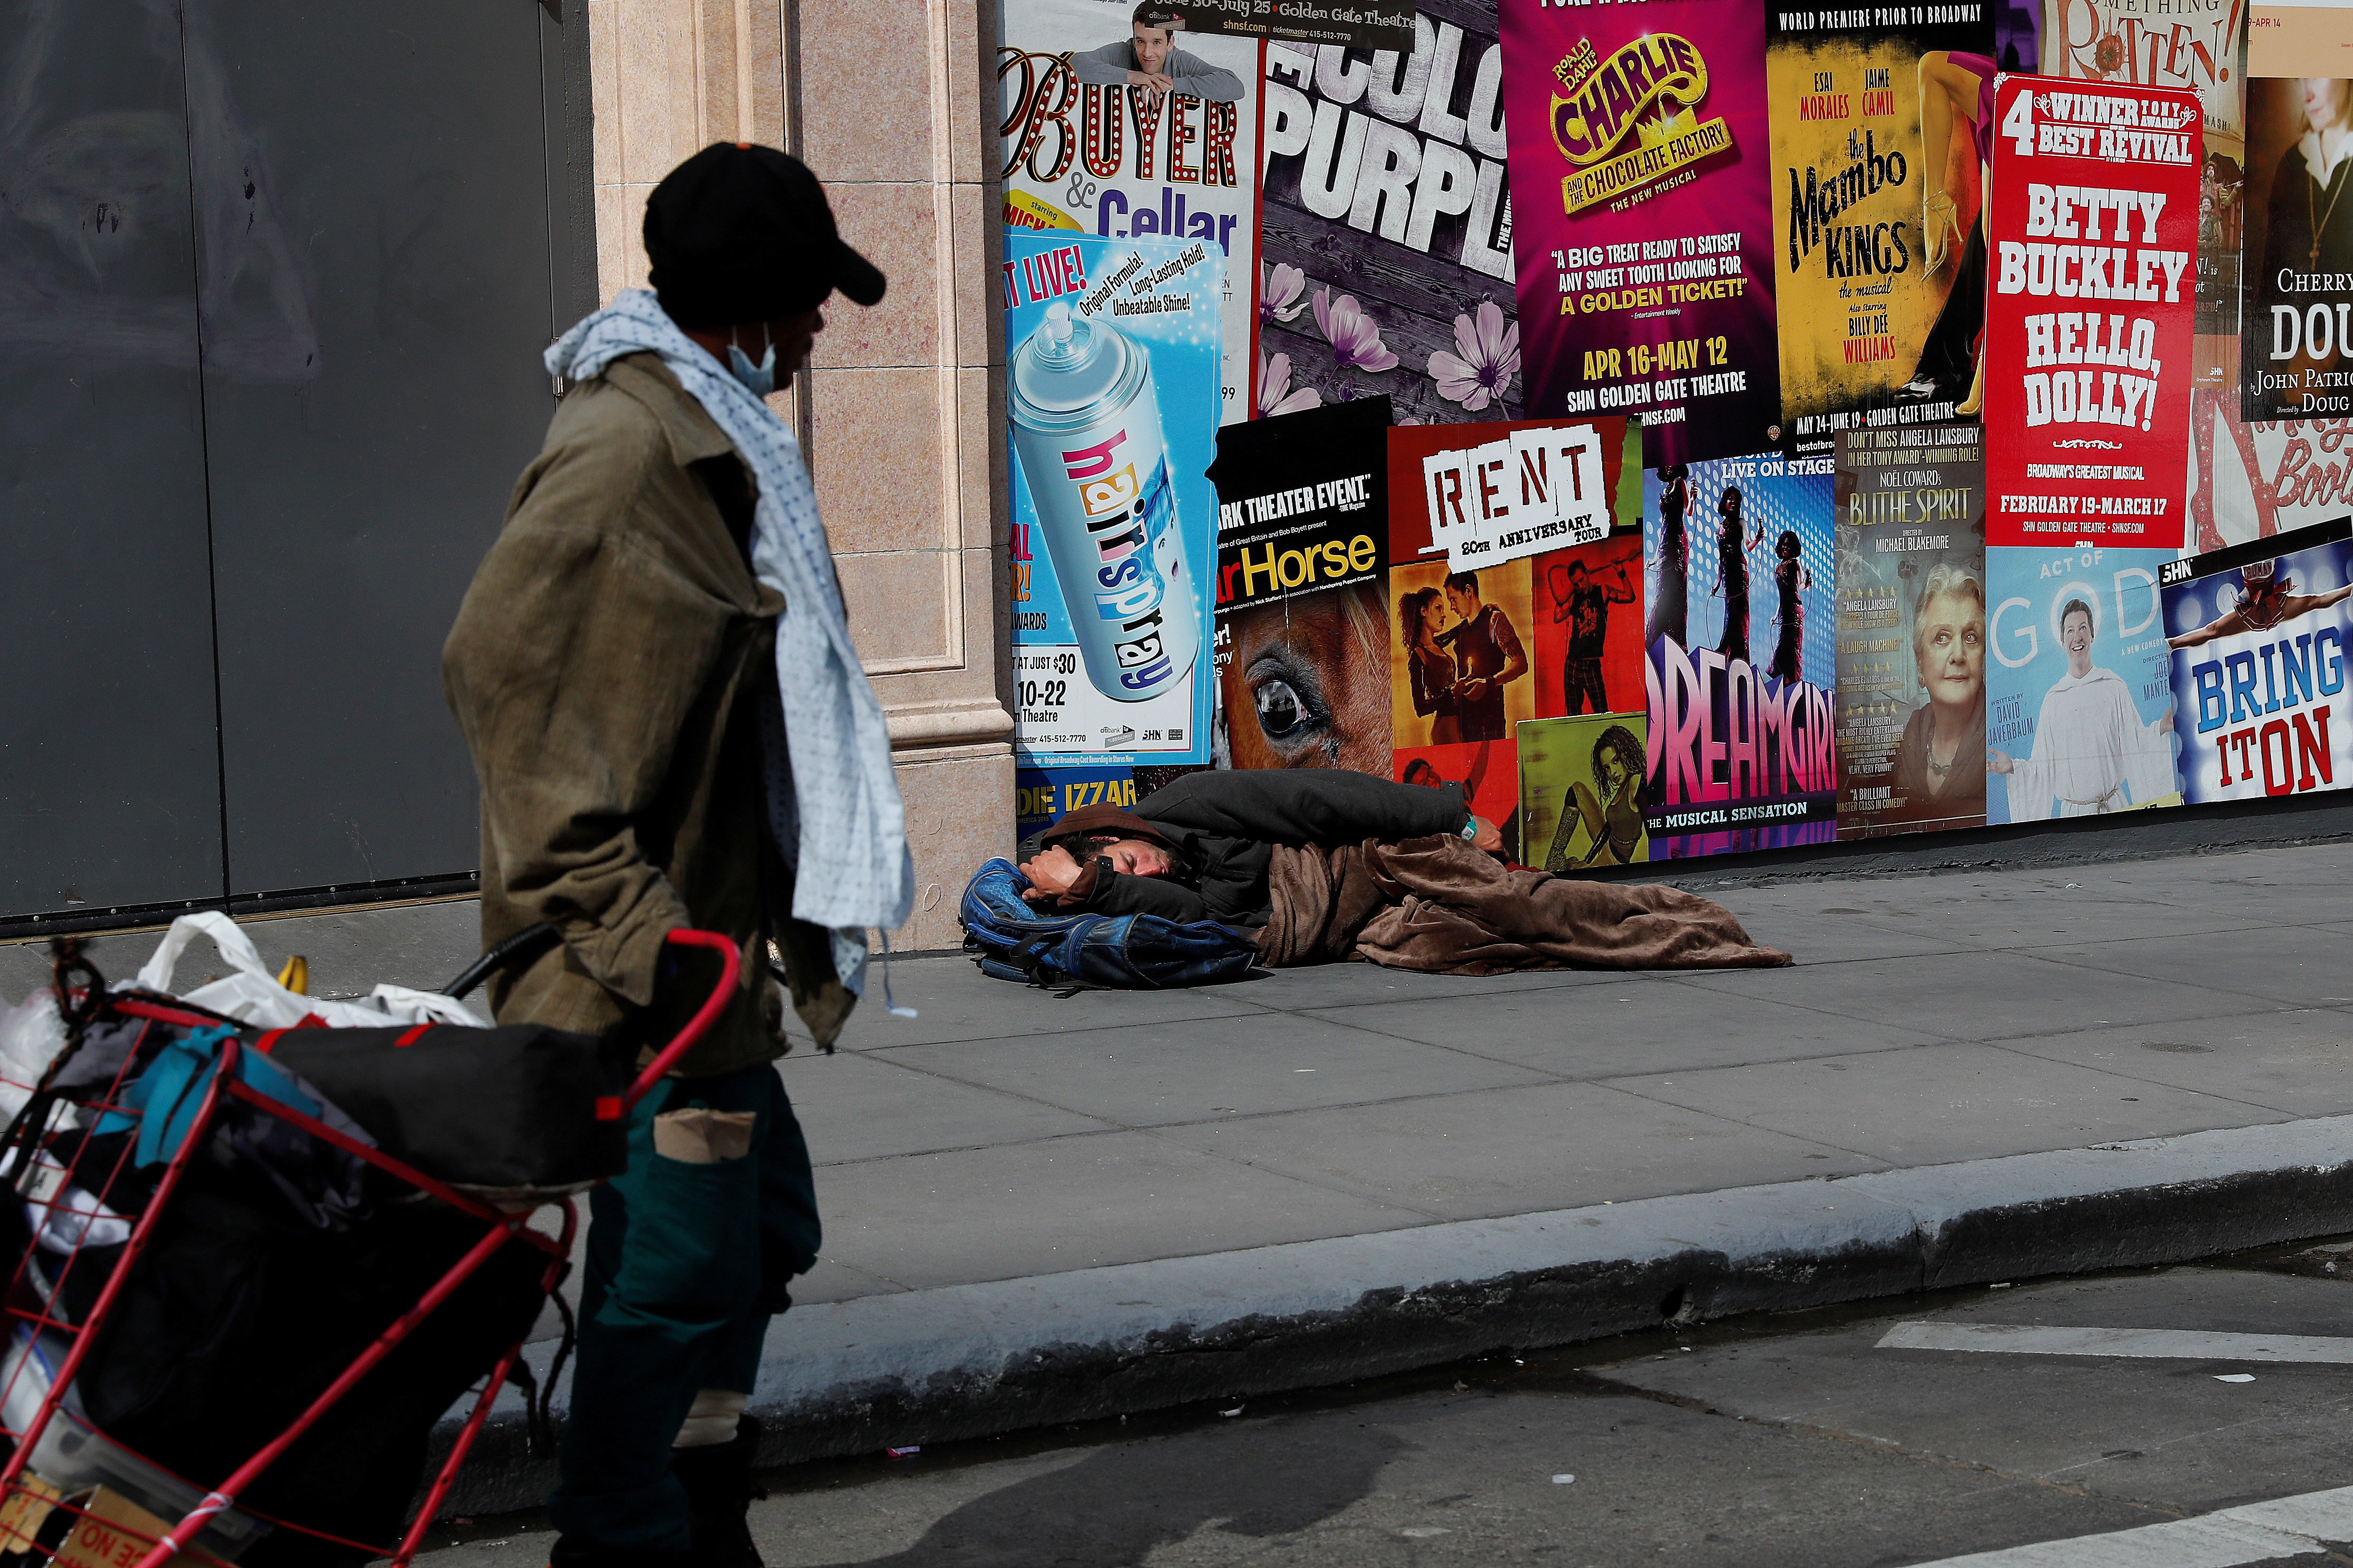 A man sleeps on the sidewalk amid an outbreak of the coronavirus disease (COVID-19), in San Francisco, California, U.S. March 27, 2020. Picture taken March 27, 2020.